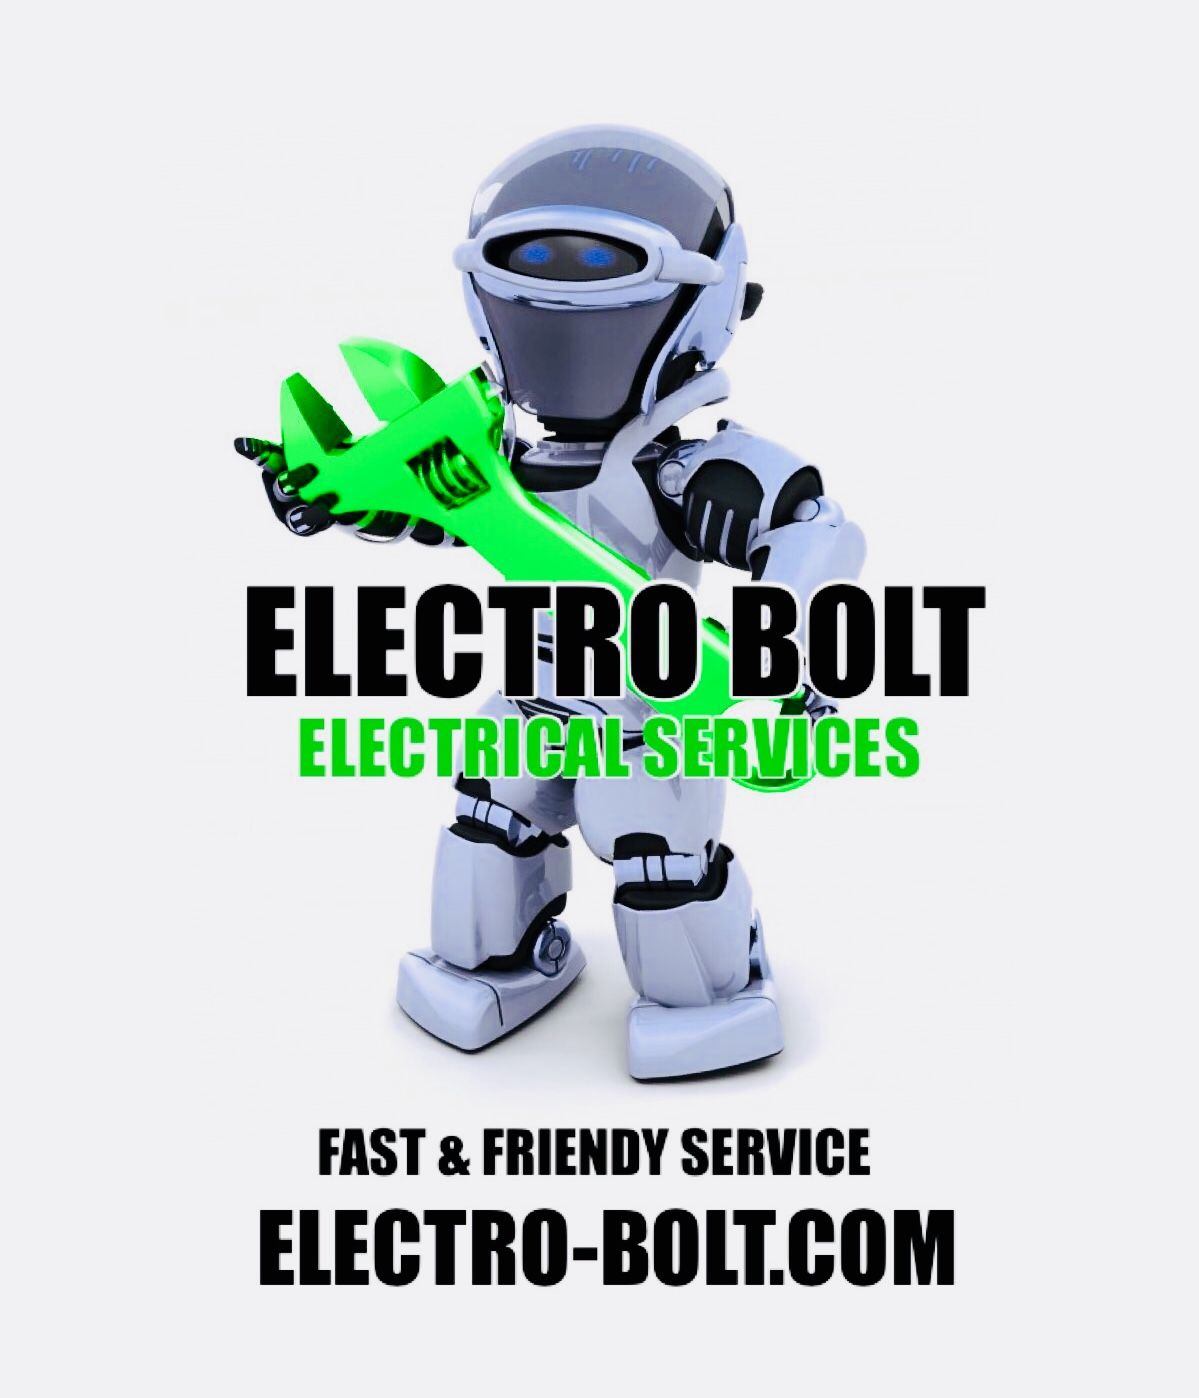 Electro Bolt Fast Friendly Service For All Electrical Needs For Commercial And Residential 1 Electrical Comp Electricity Electric Company Service